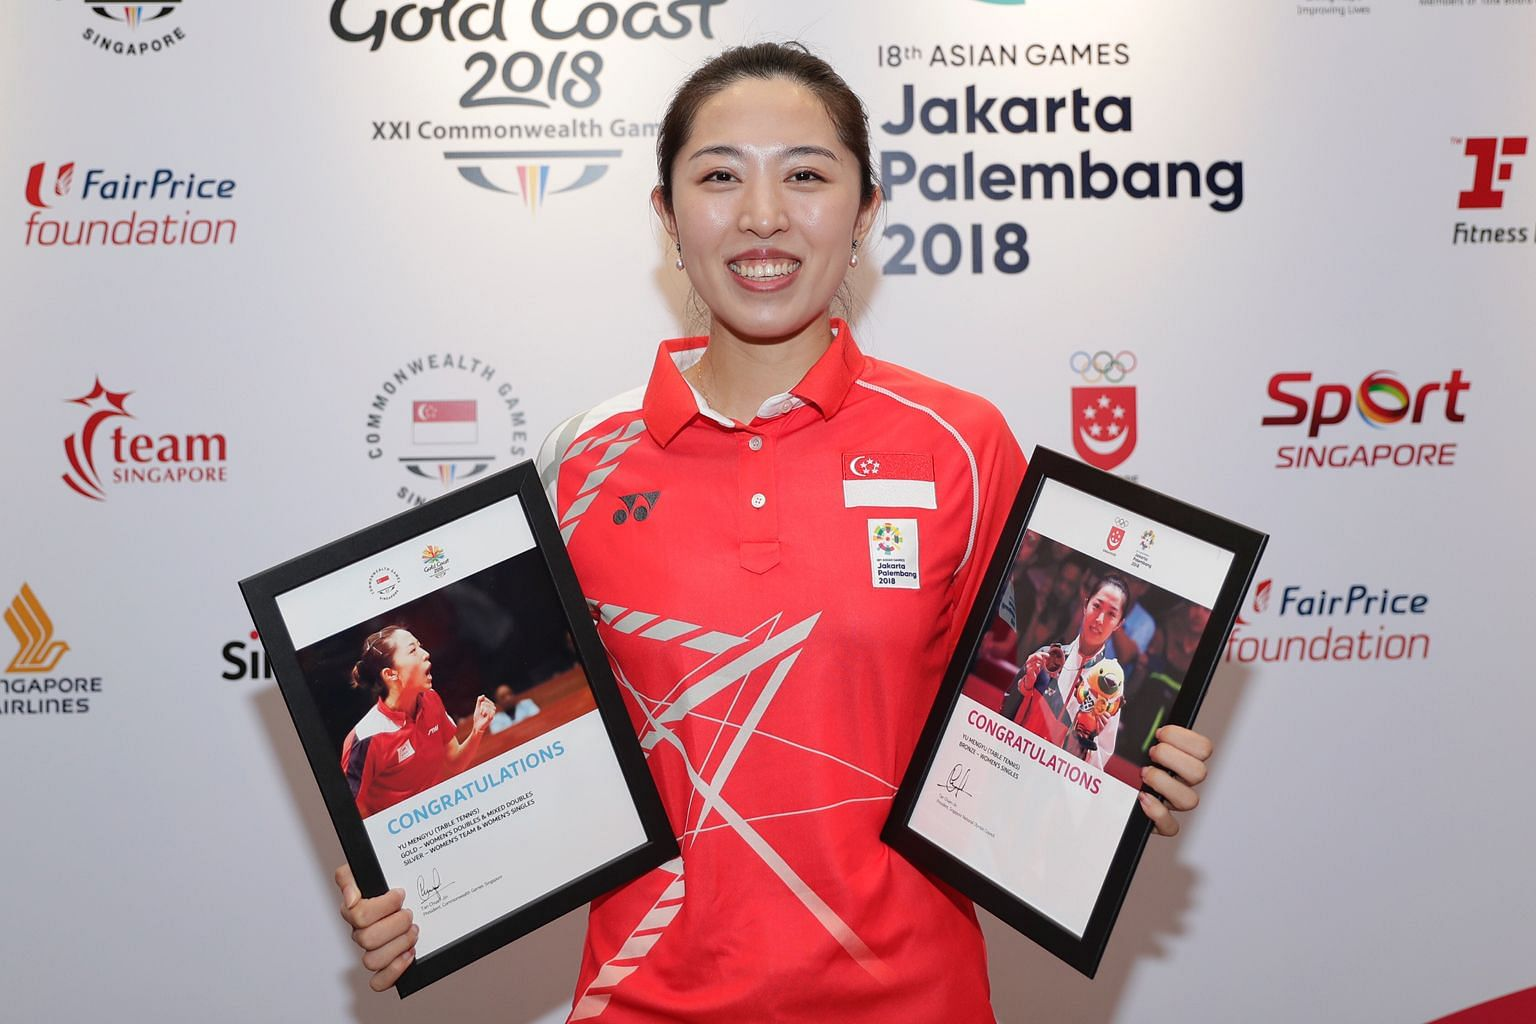 A happy Yu Mengyu holding mementoes of her showing at this year's Commonwealth and Asian Games.